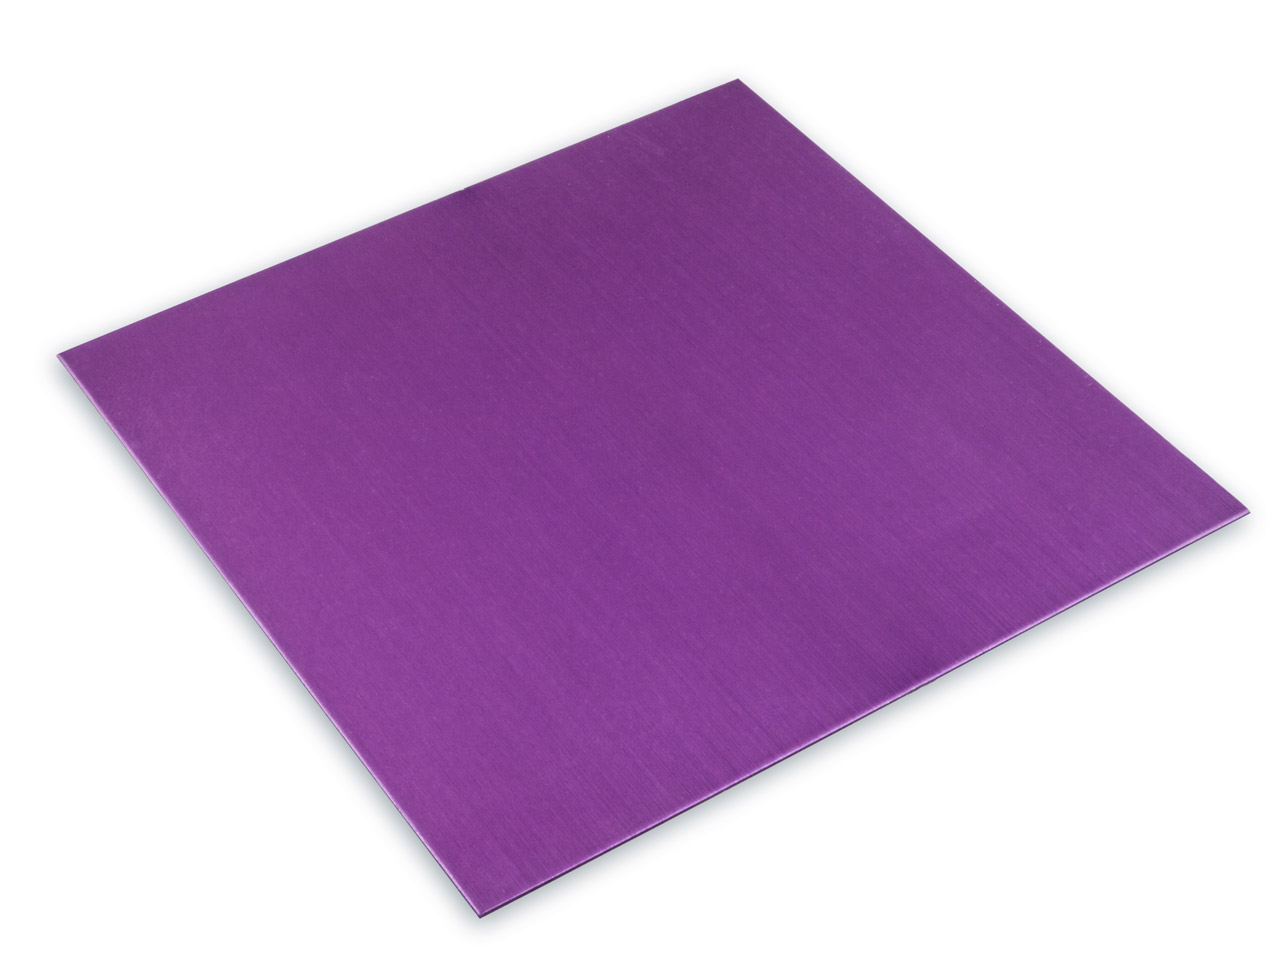 Anodised Coloured Purple Aluminium Sheet 100x100x0.7mm